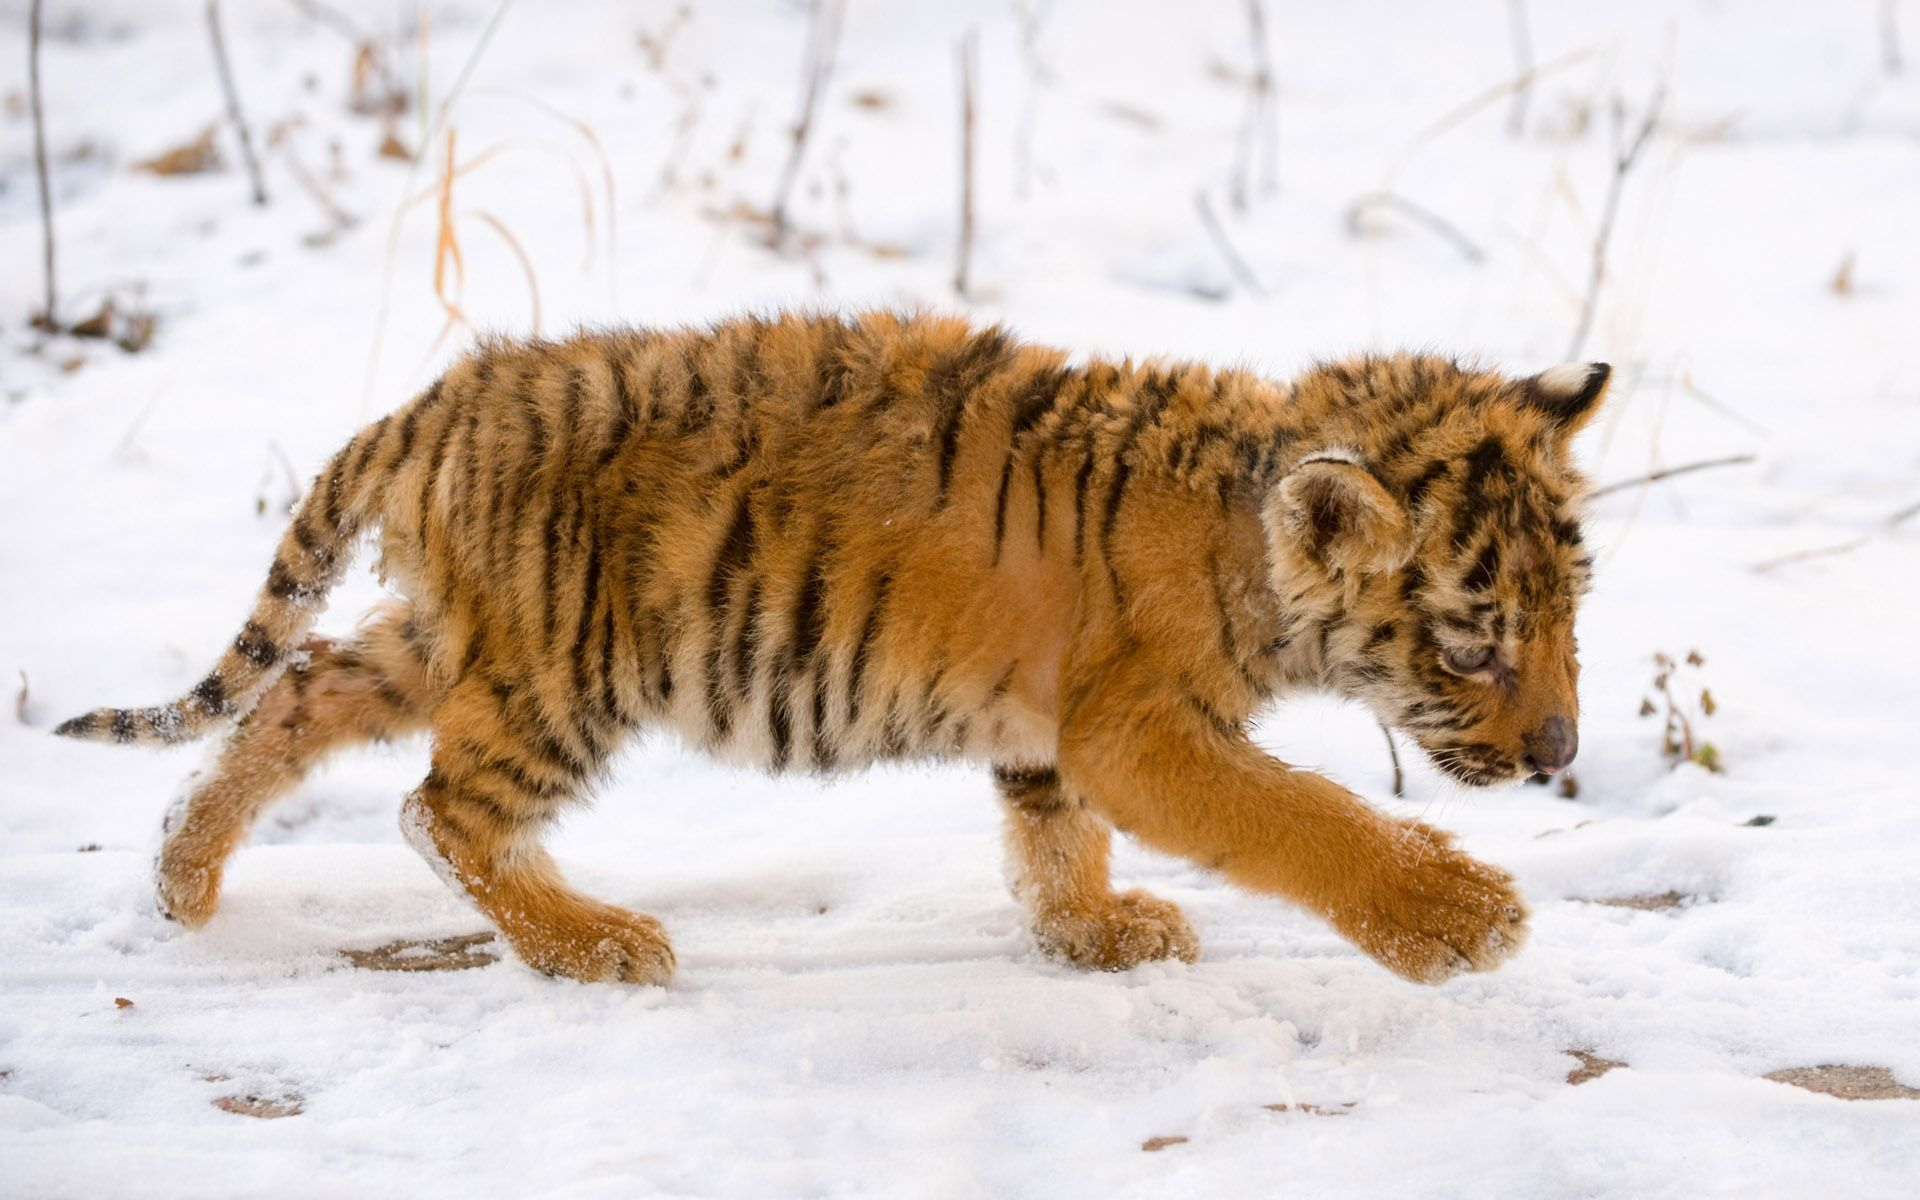 Tiger Baby, snow, Wallpaper and Background